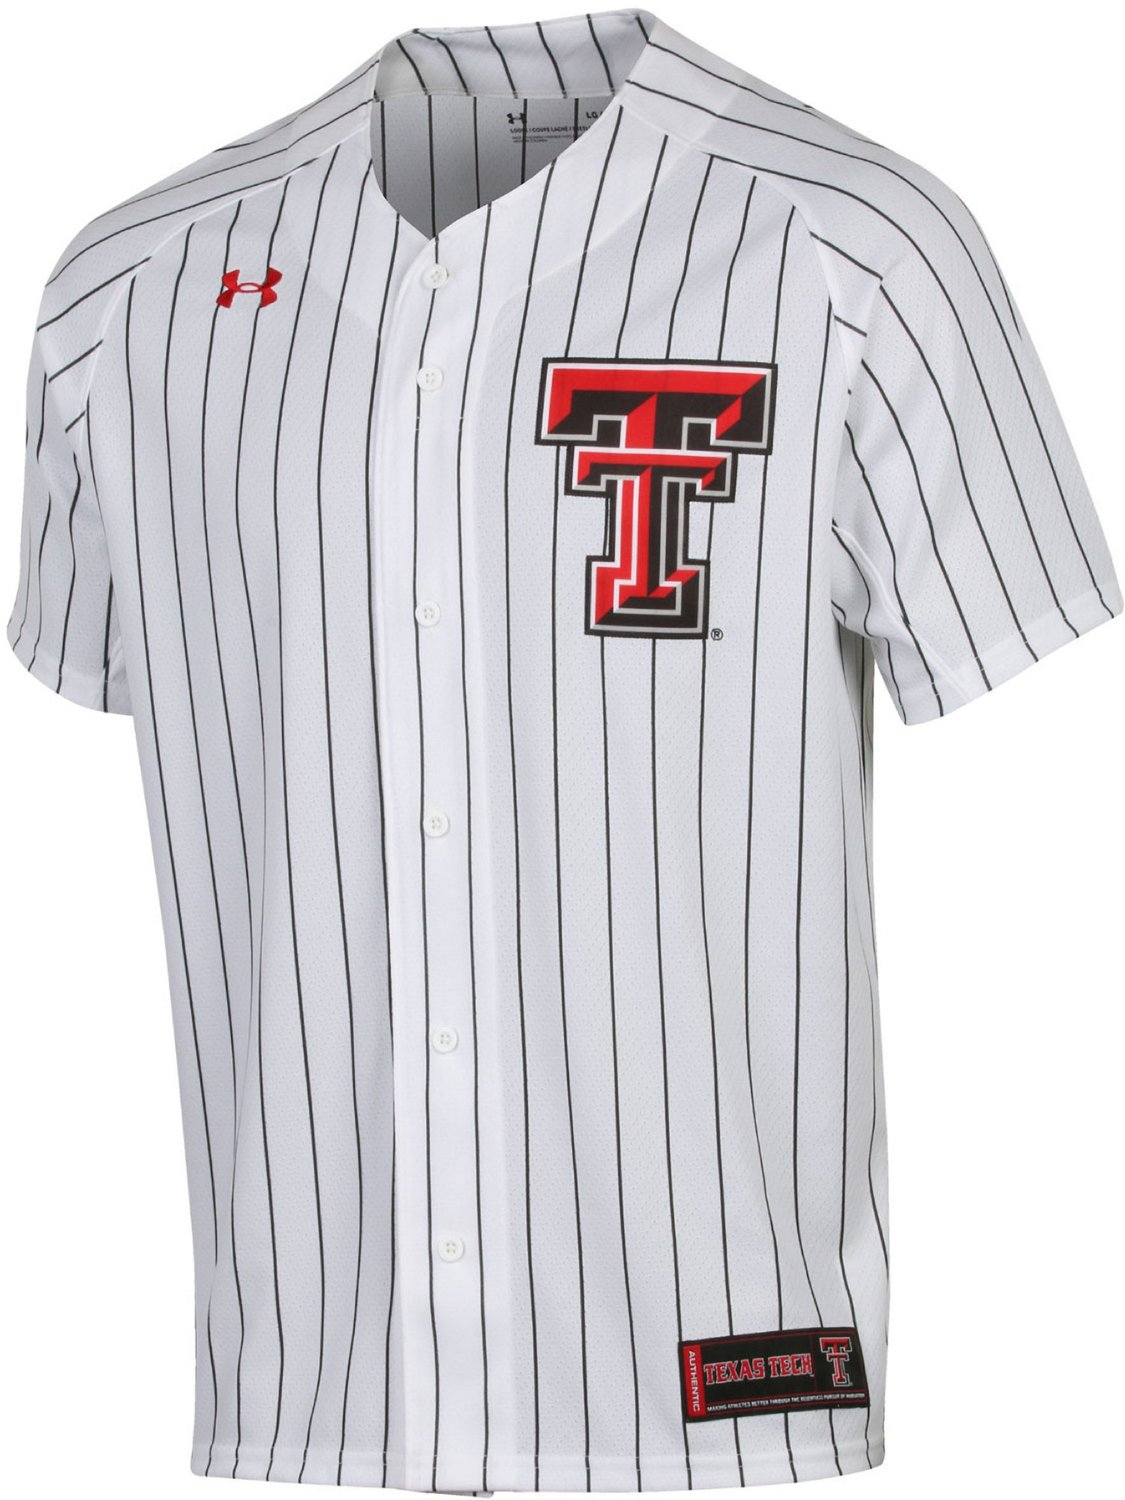 Texas Tech University Pinstripe Replica